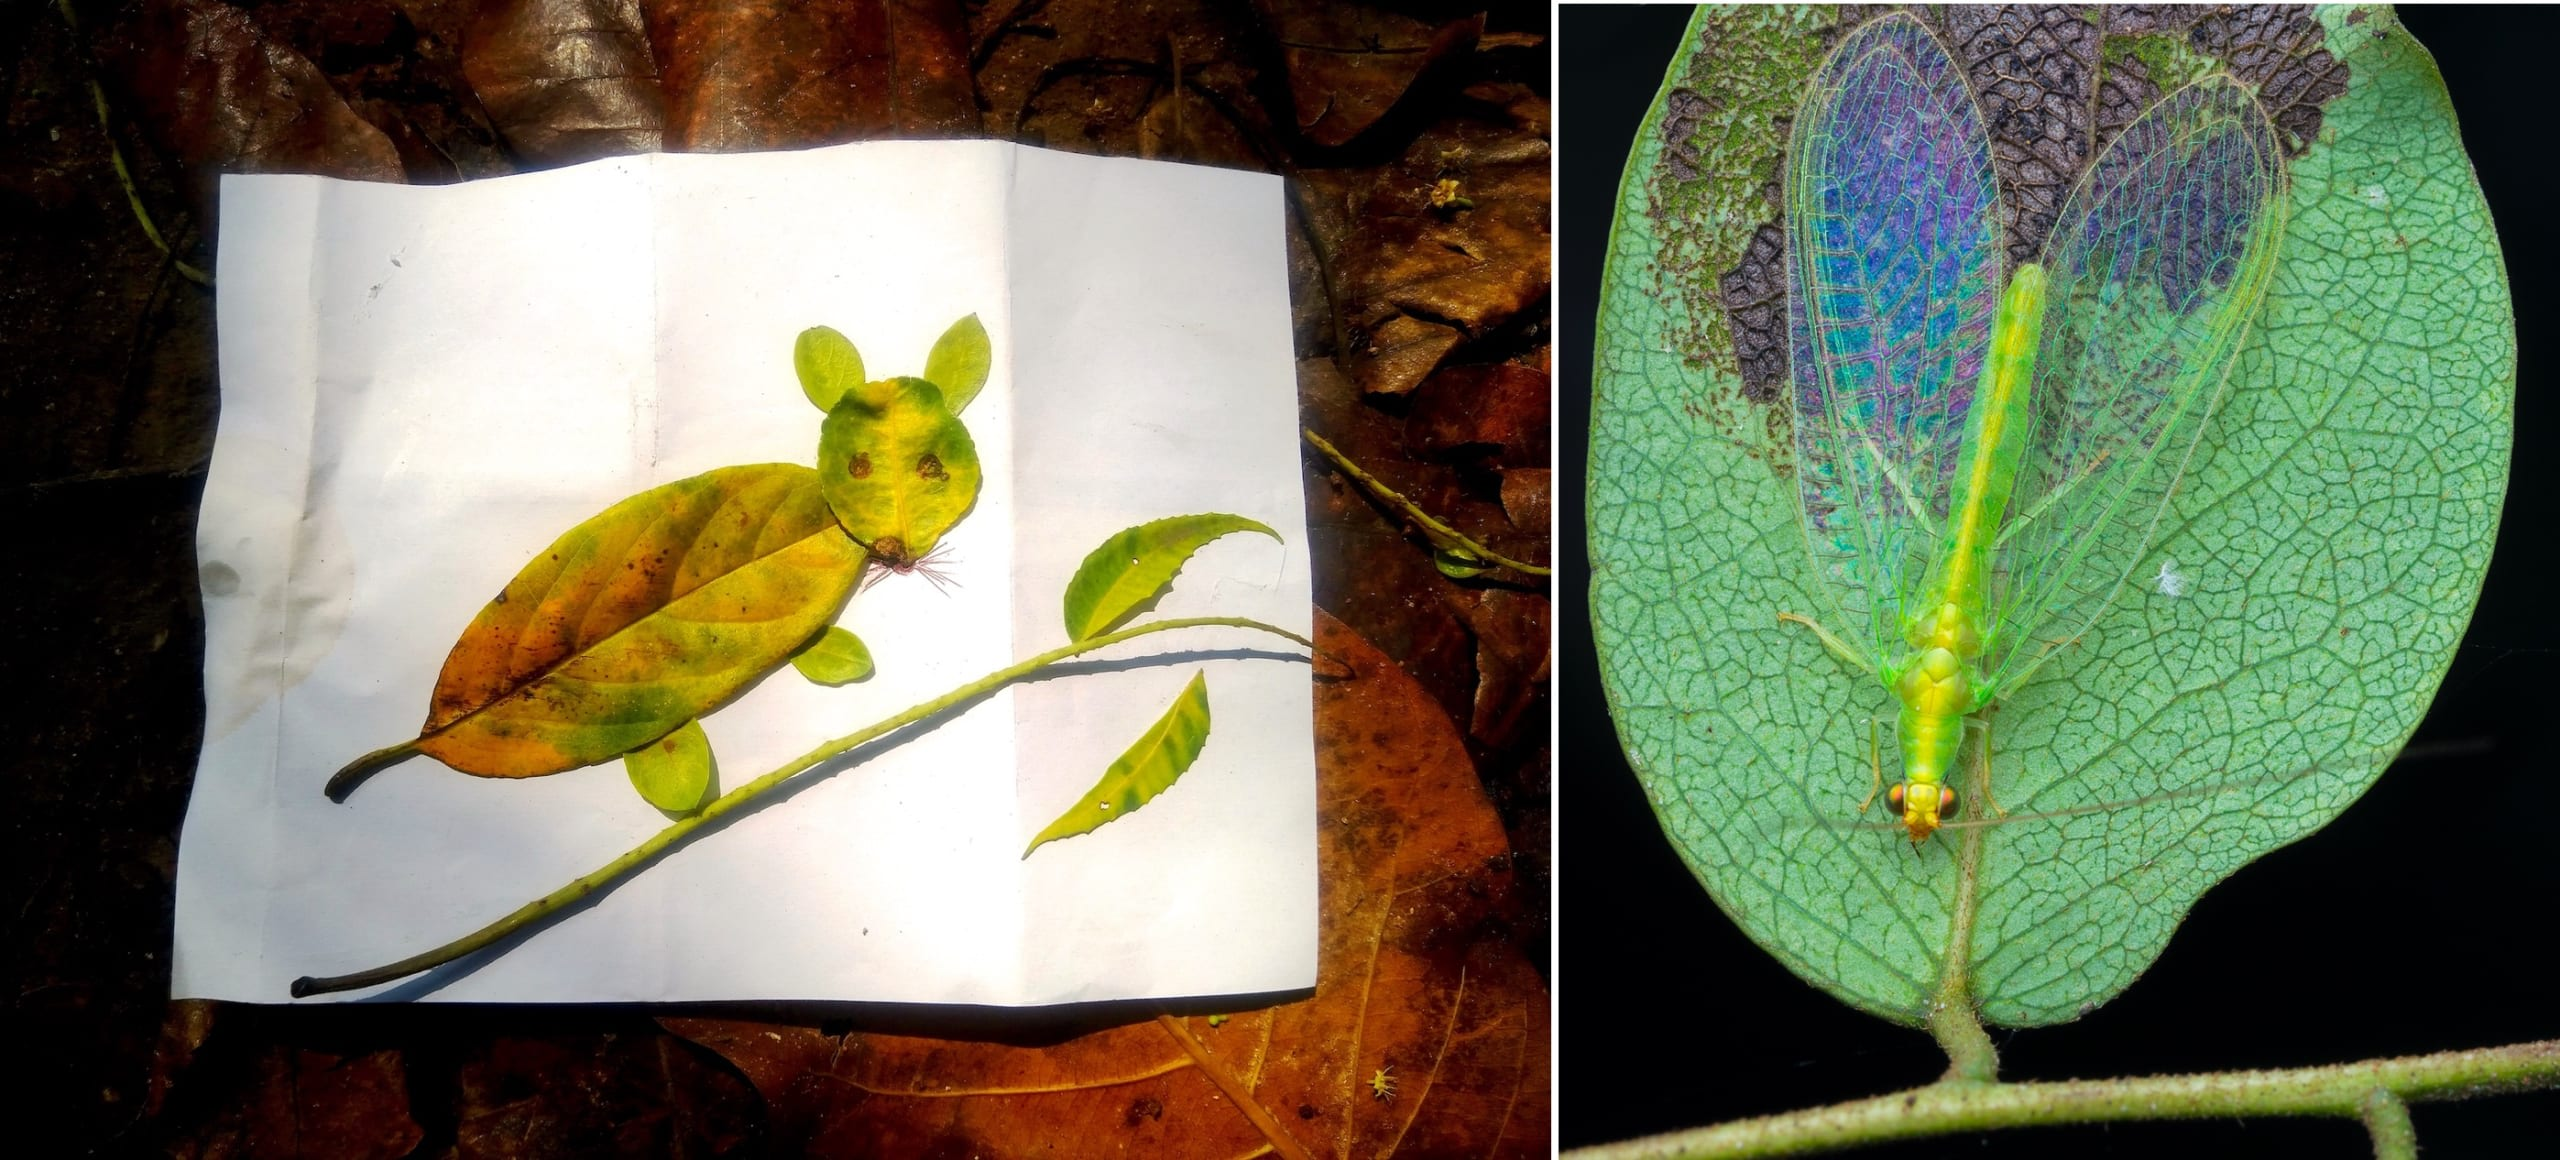 Using fallen leaves to make art with nature (left) is a great way to observe and build a connection with nature. Carefully exploring the underside of leaves can also reveal creatures like this delicate green lacewing (right).  Photos: Divya Candade (left), Hayath Mohammed (right)